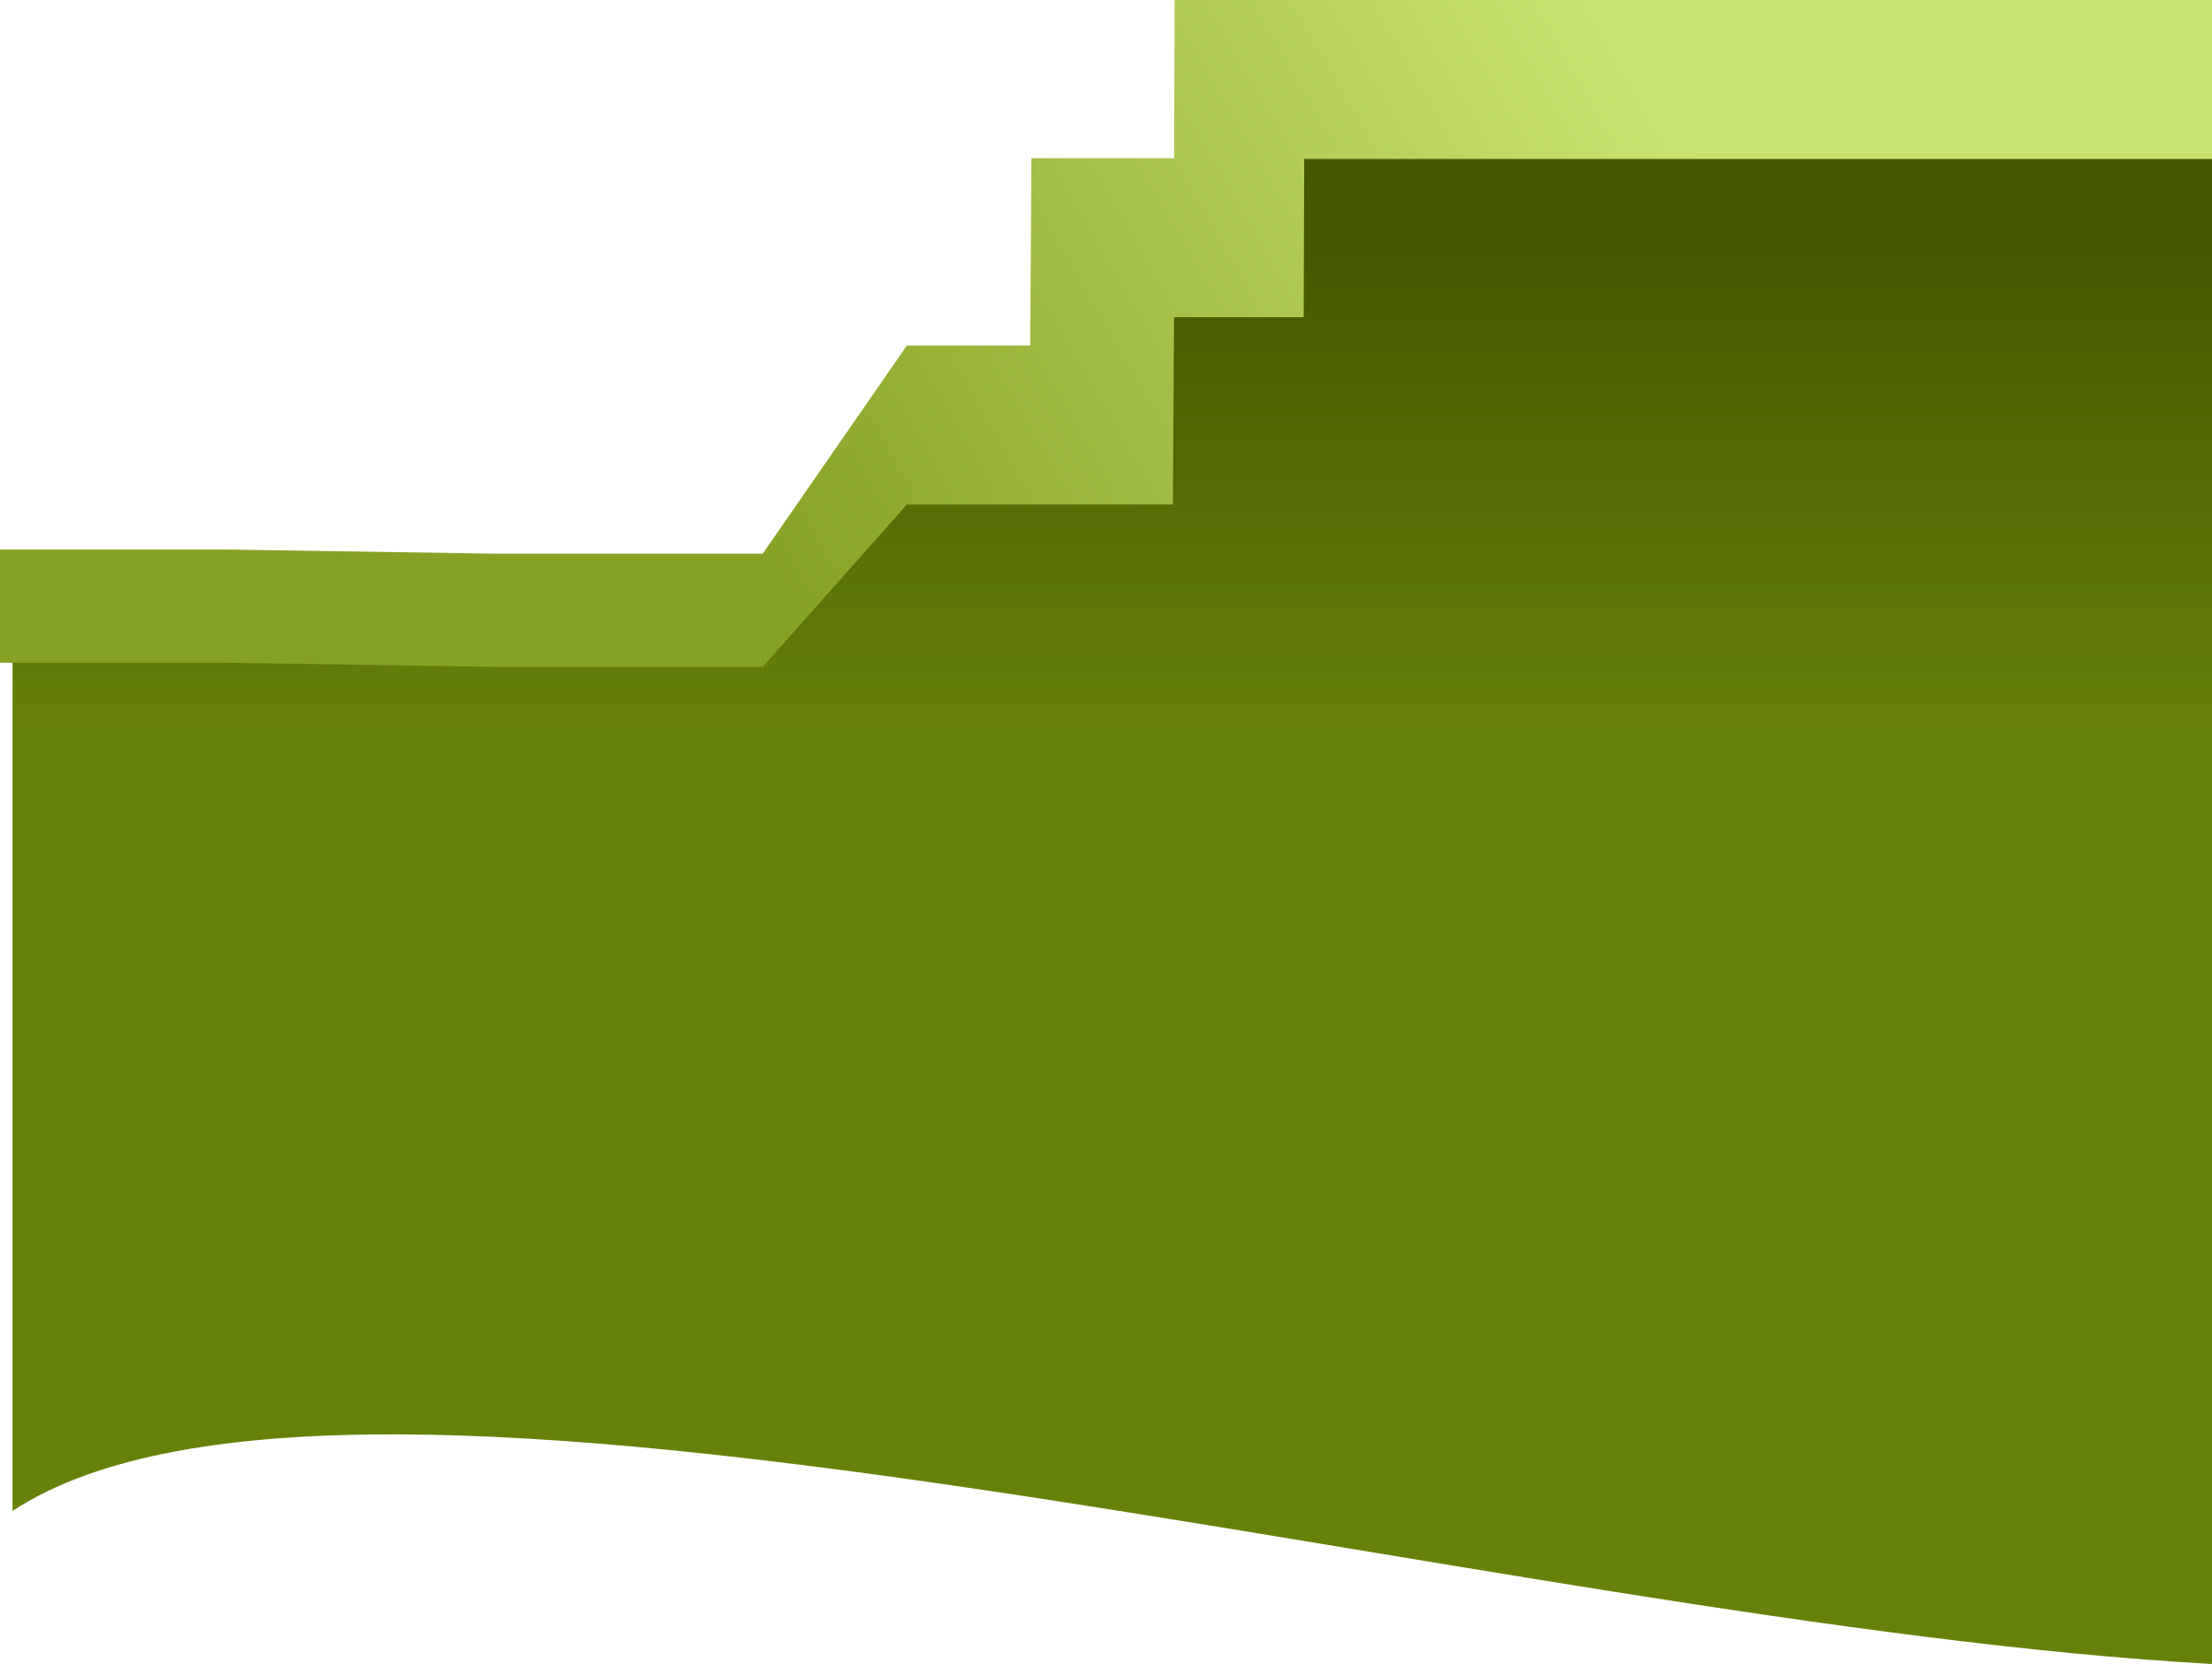 Green background png. File mart